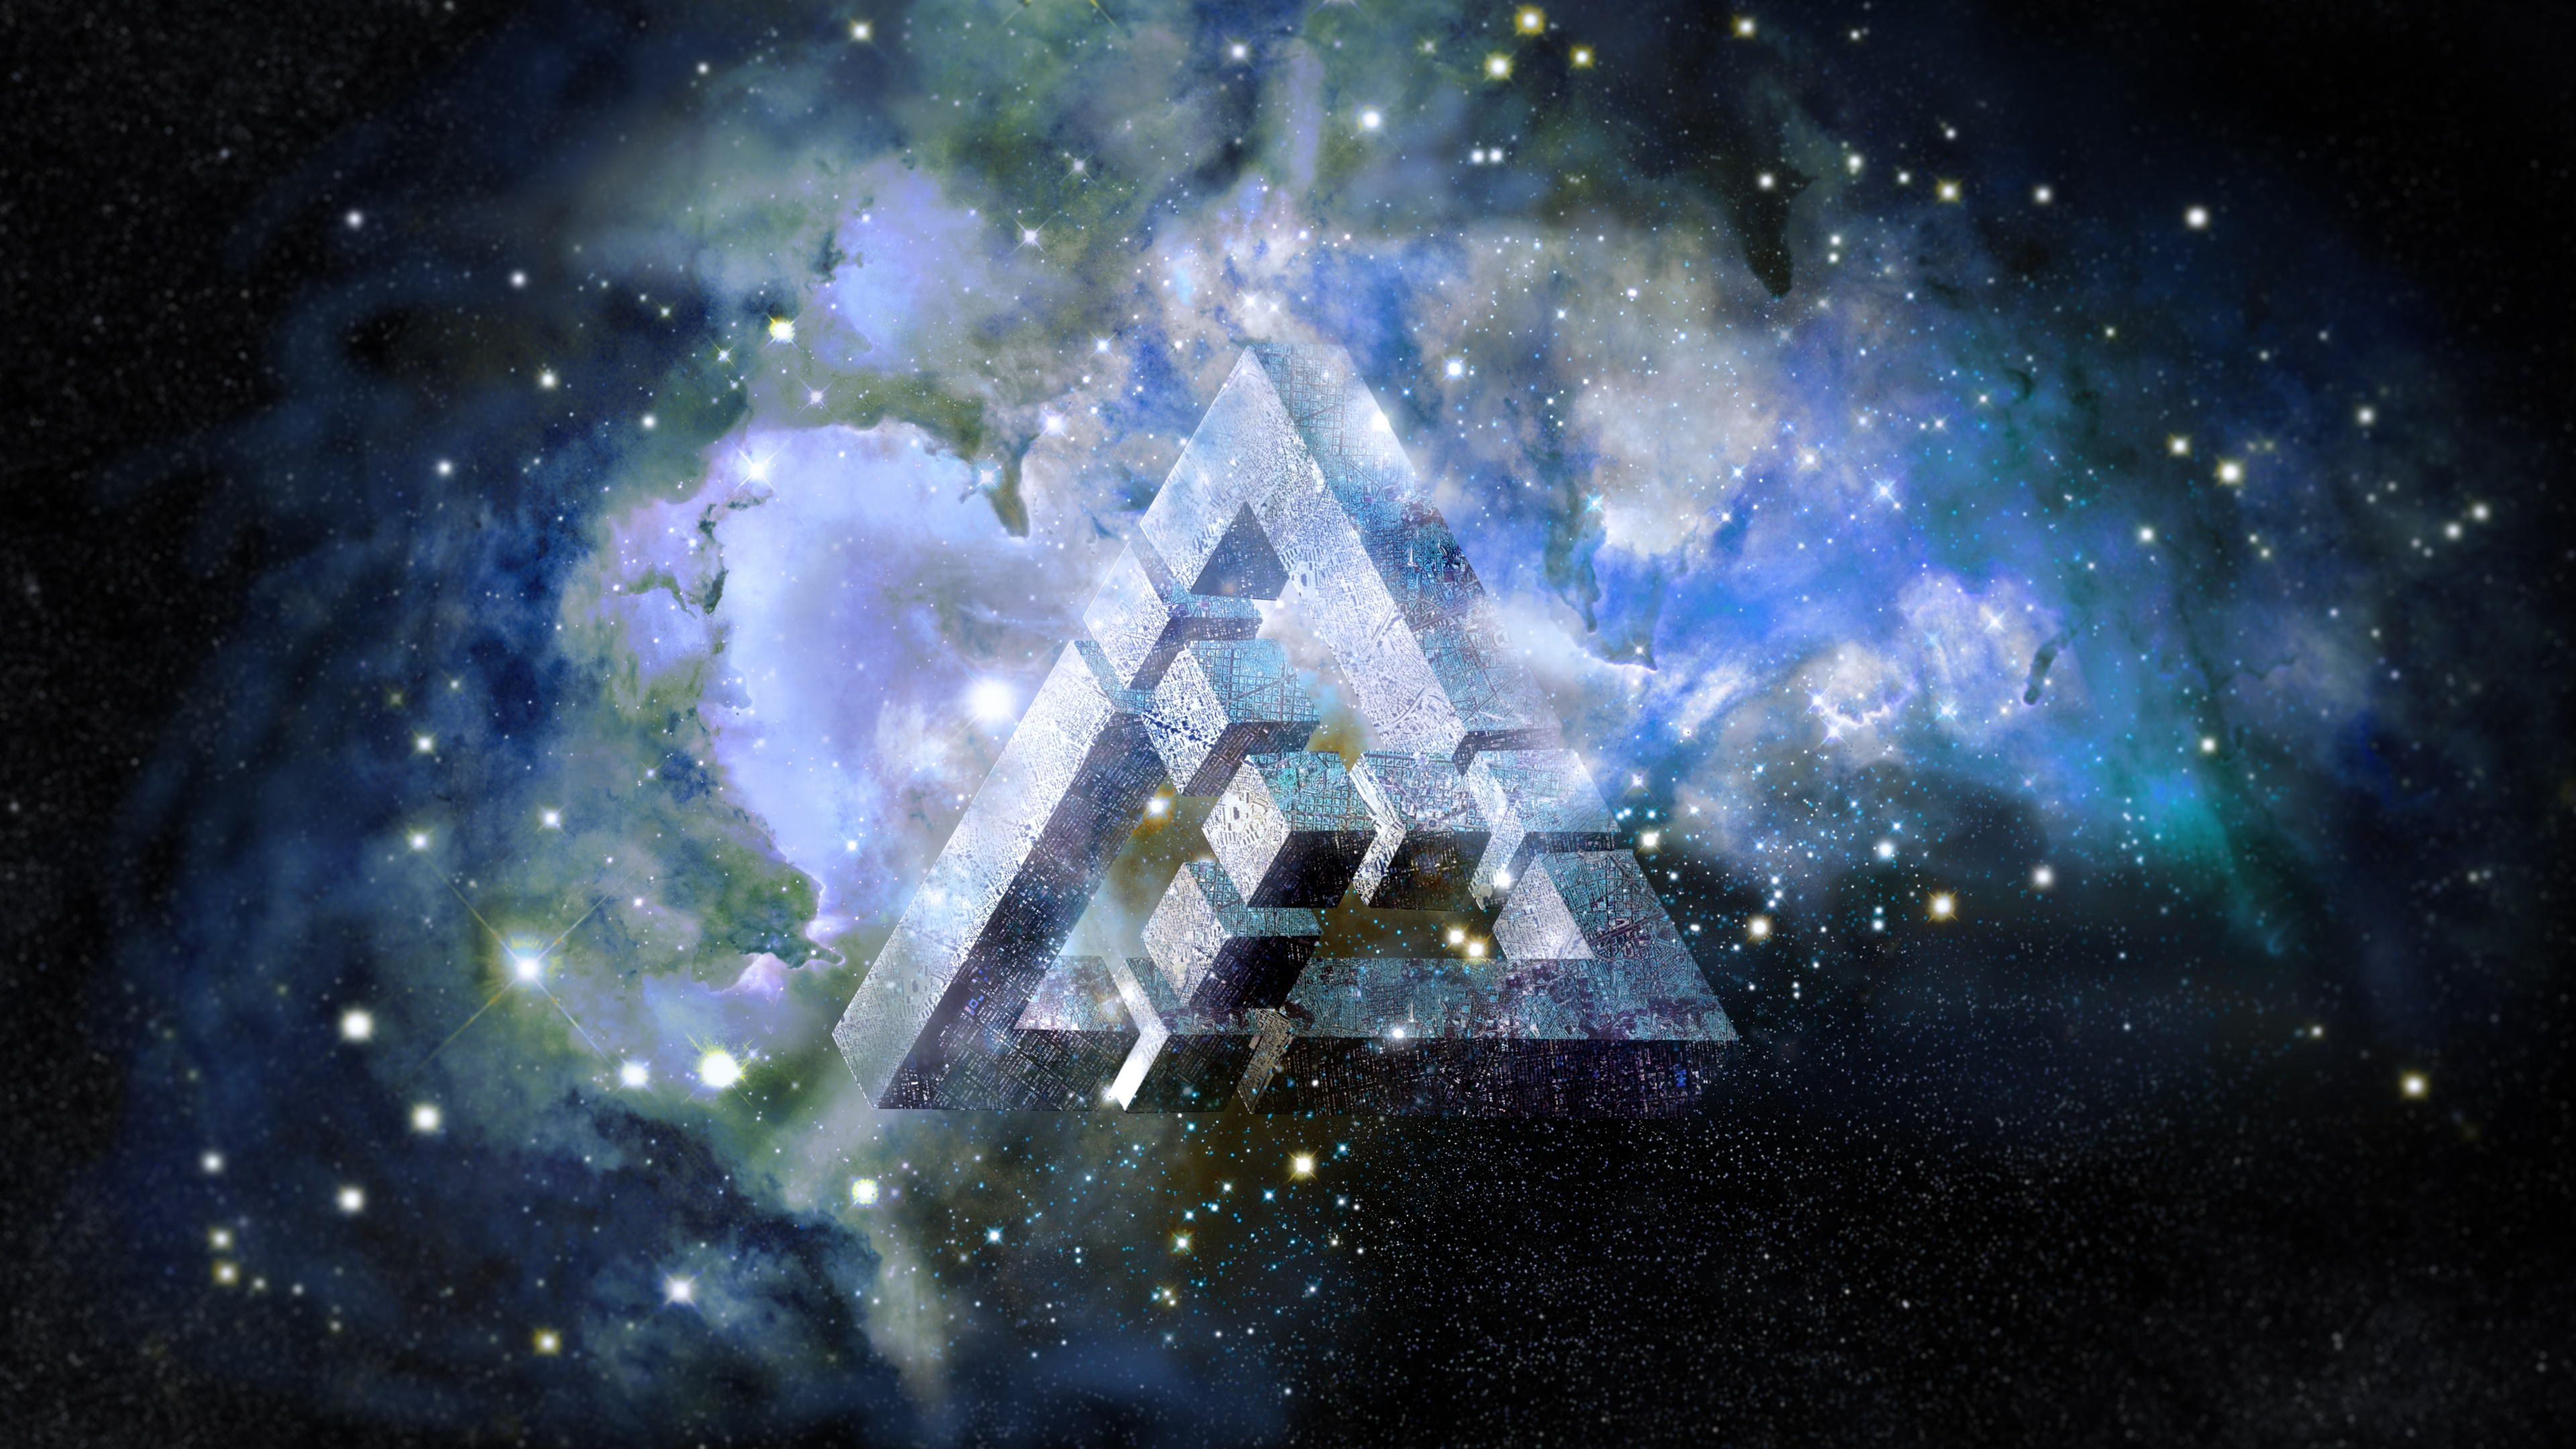 nebula, Triangle, Abstract, Space Wallpapers HD / Desktop and